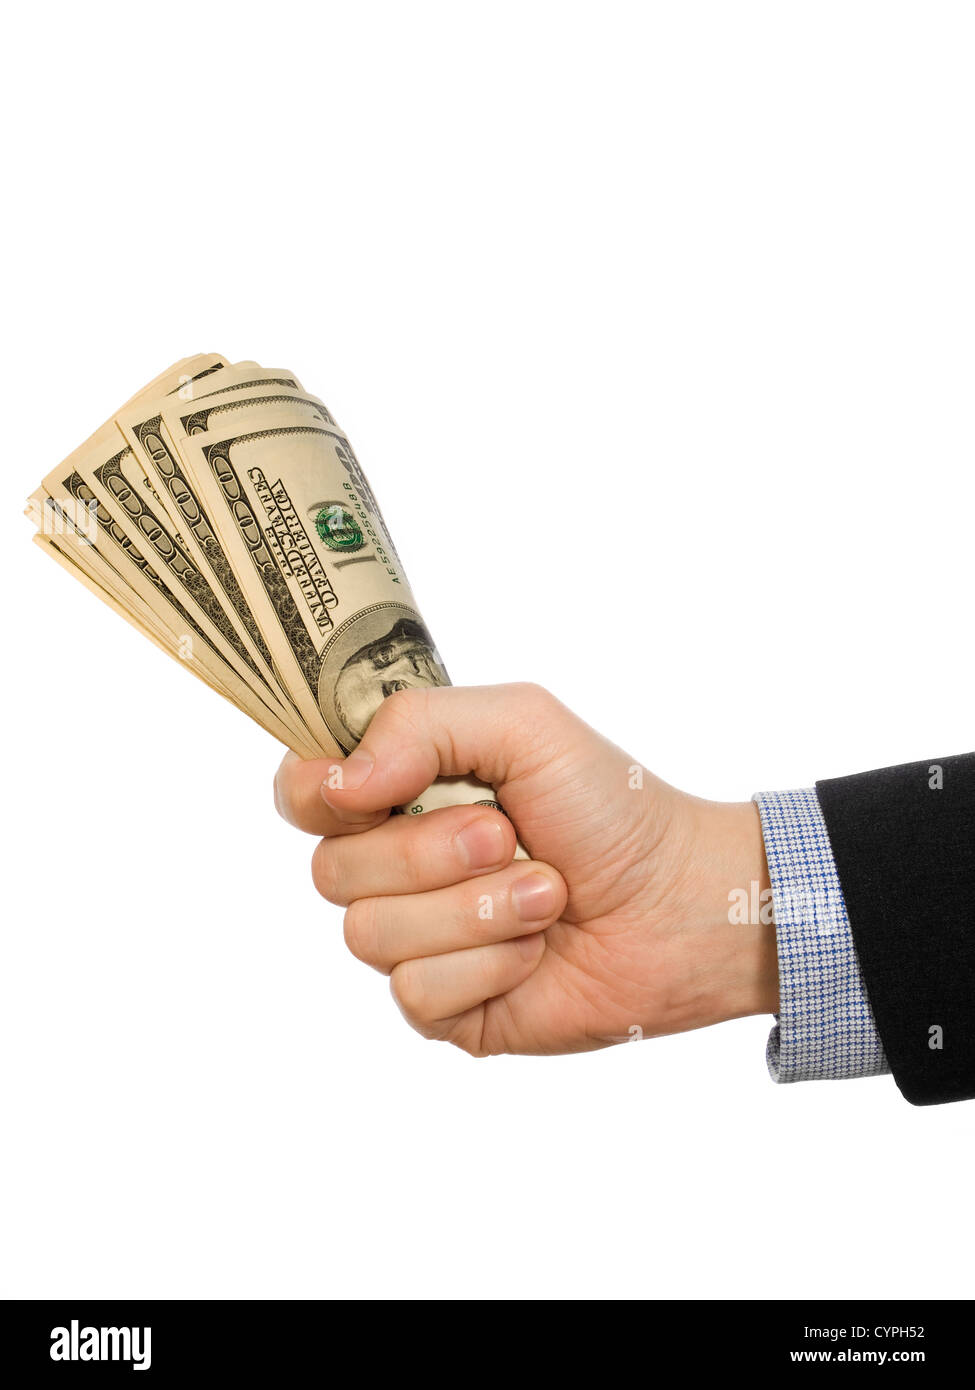 A man's hand holding a handful of dollars. - Stock Image